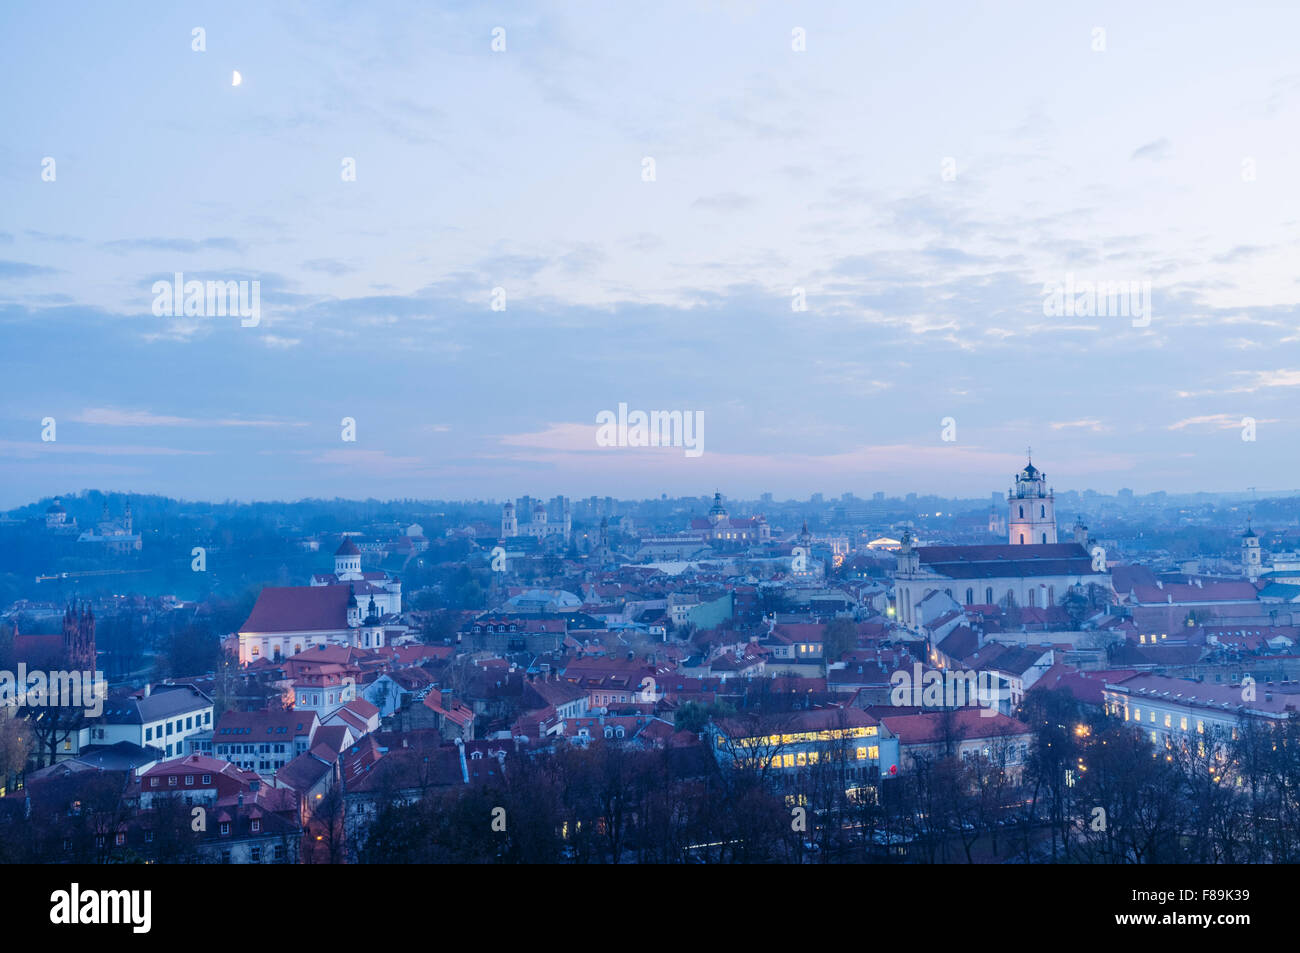 Old town overview at dusk. Vilnius, Lithuania, Europe Stock Photo